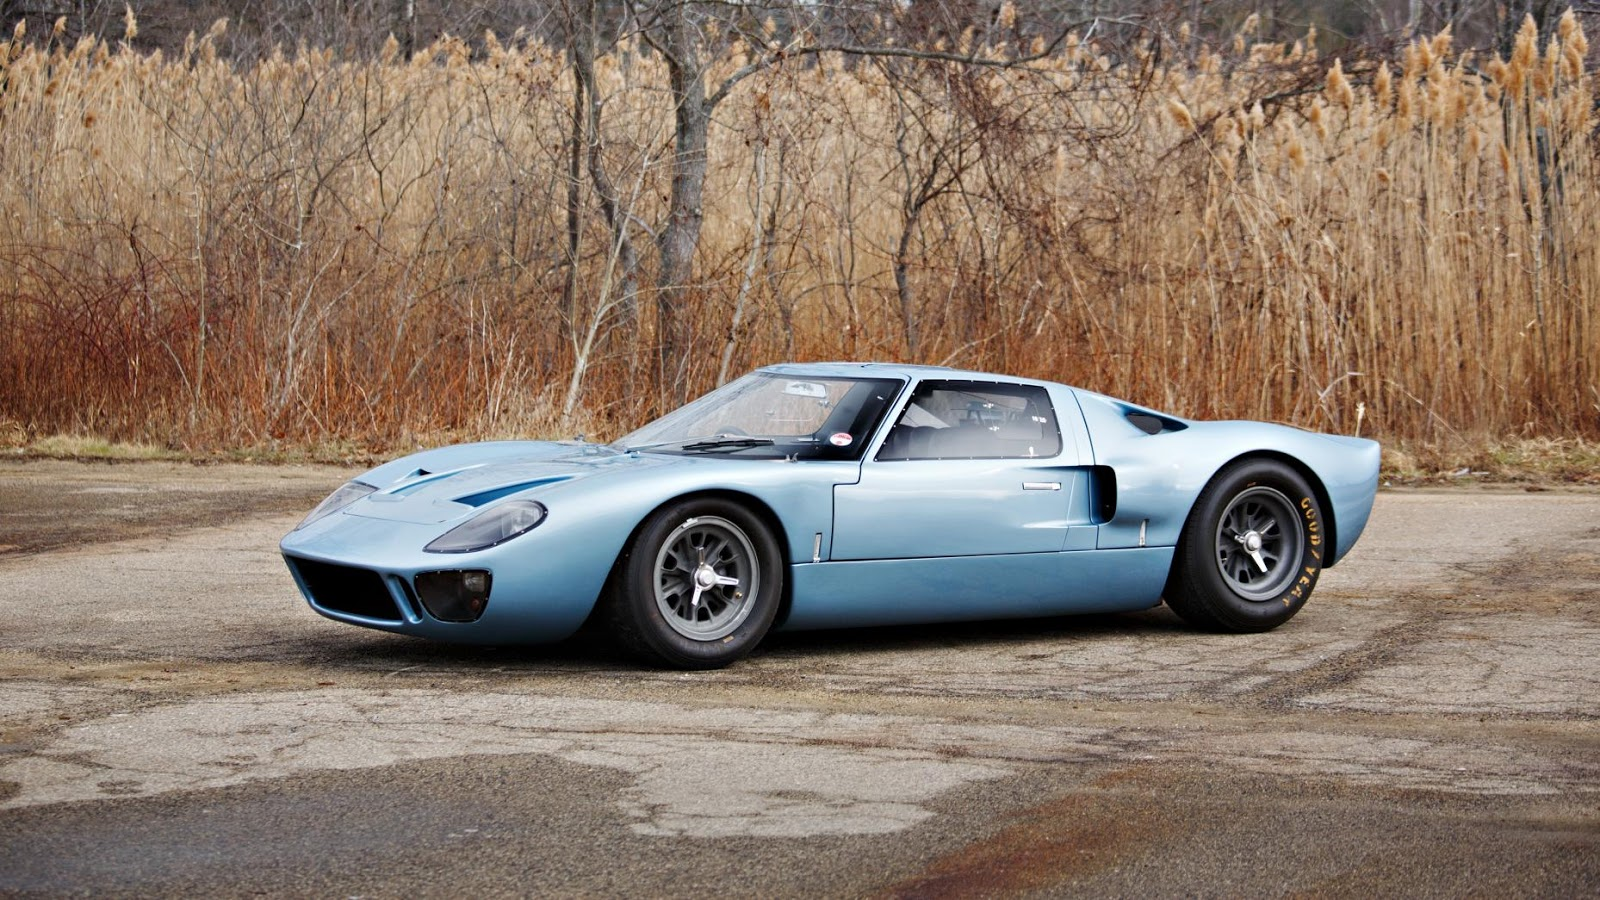 1966 Ford GT40 MK1 Road Coupe: $3,300,000